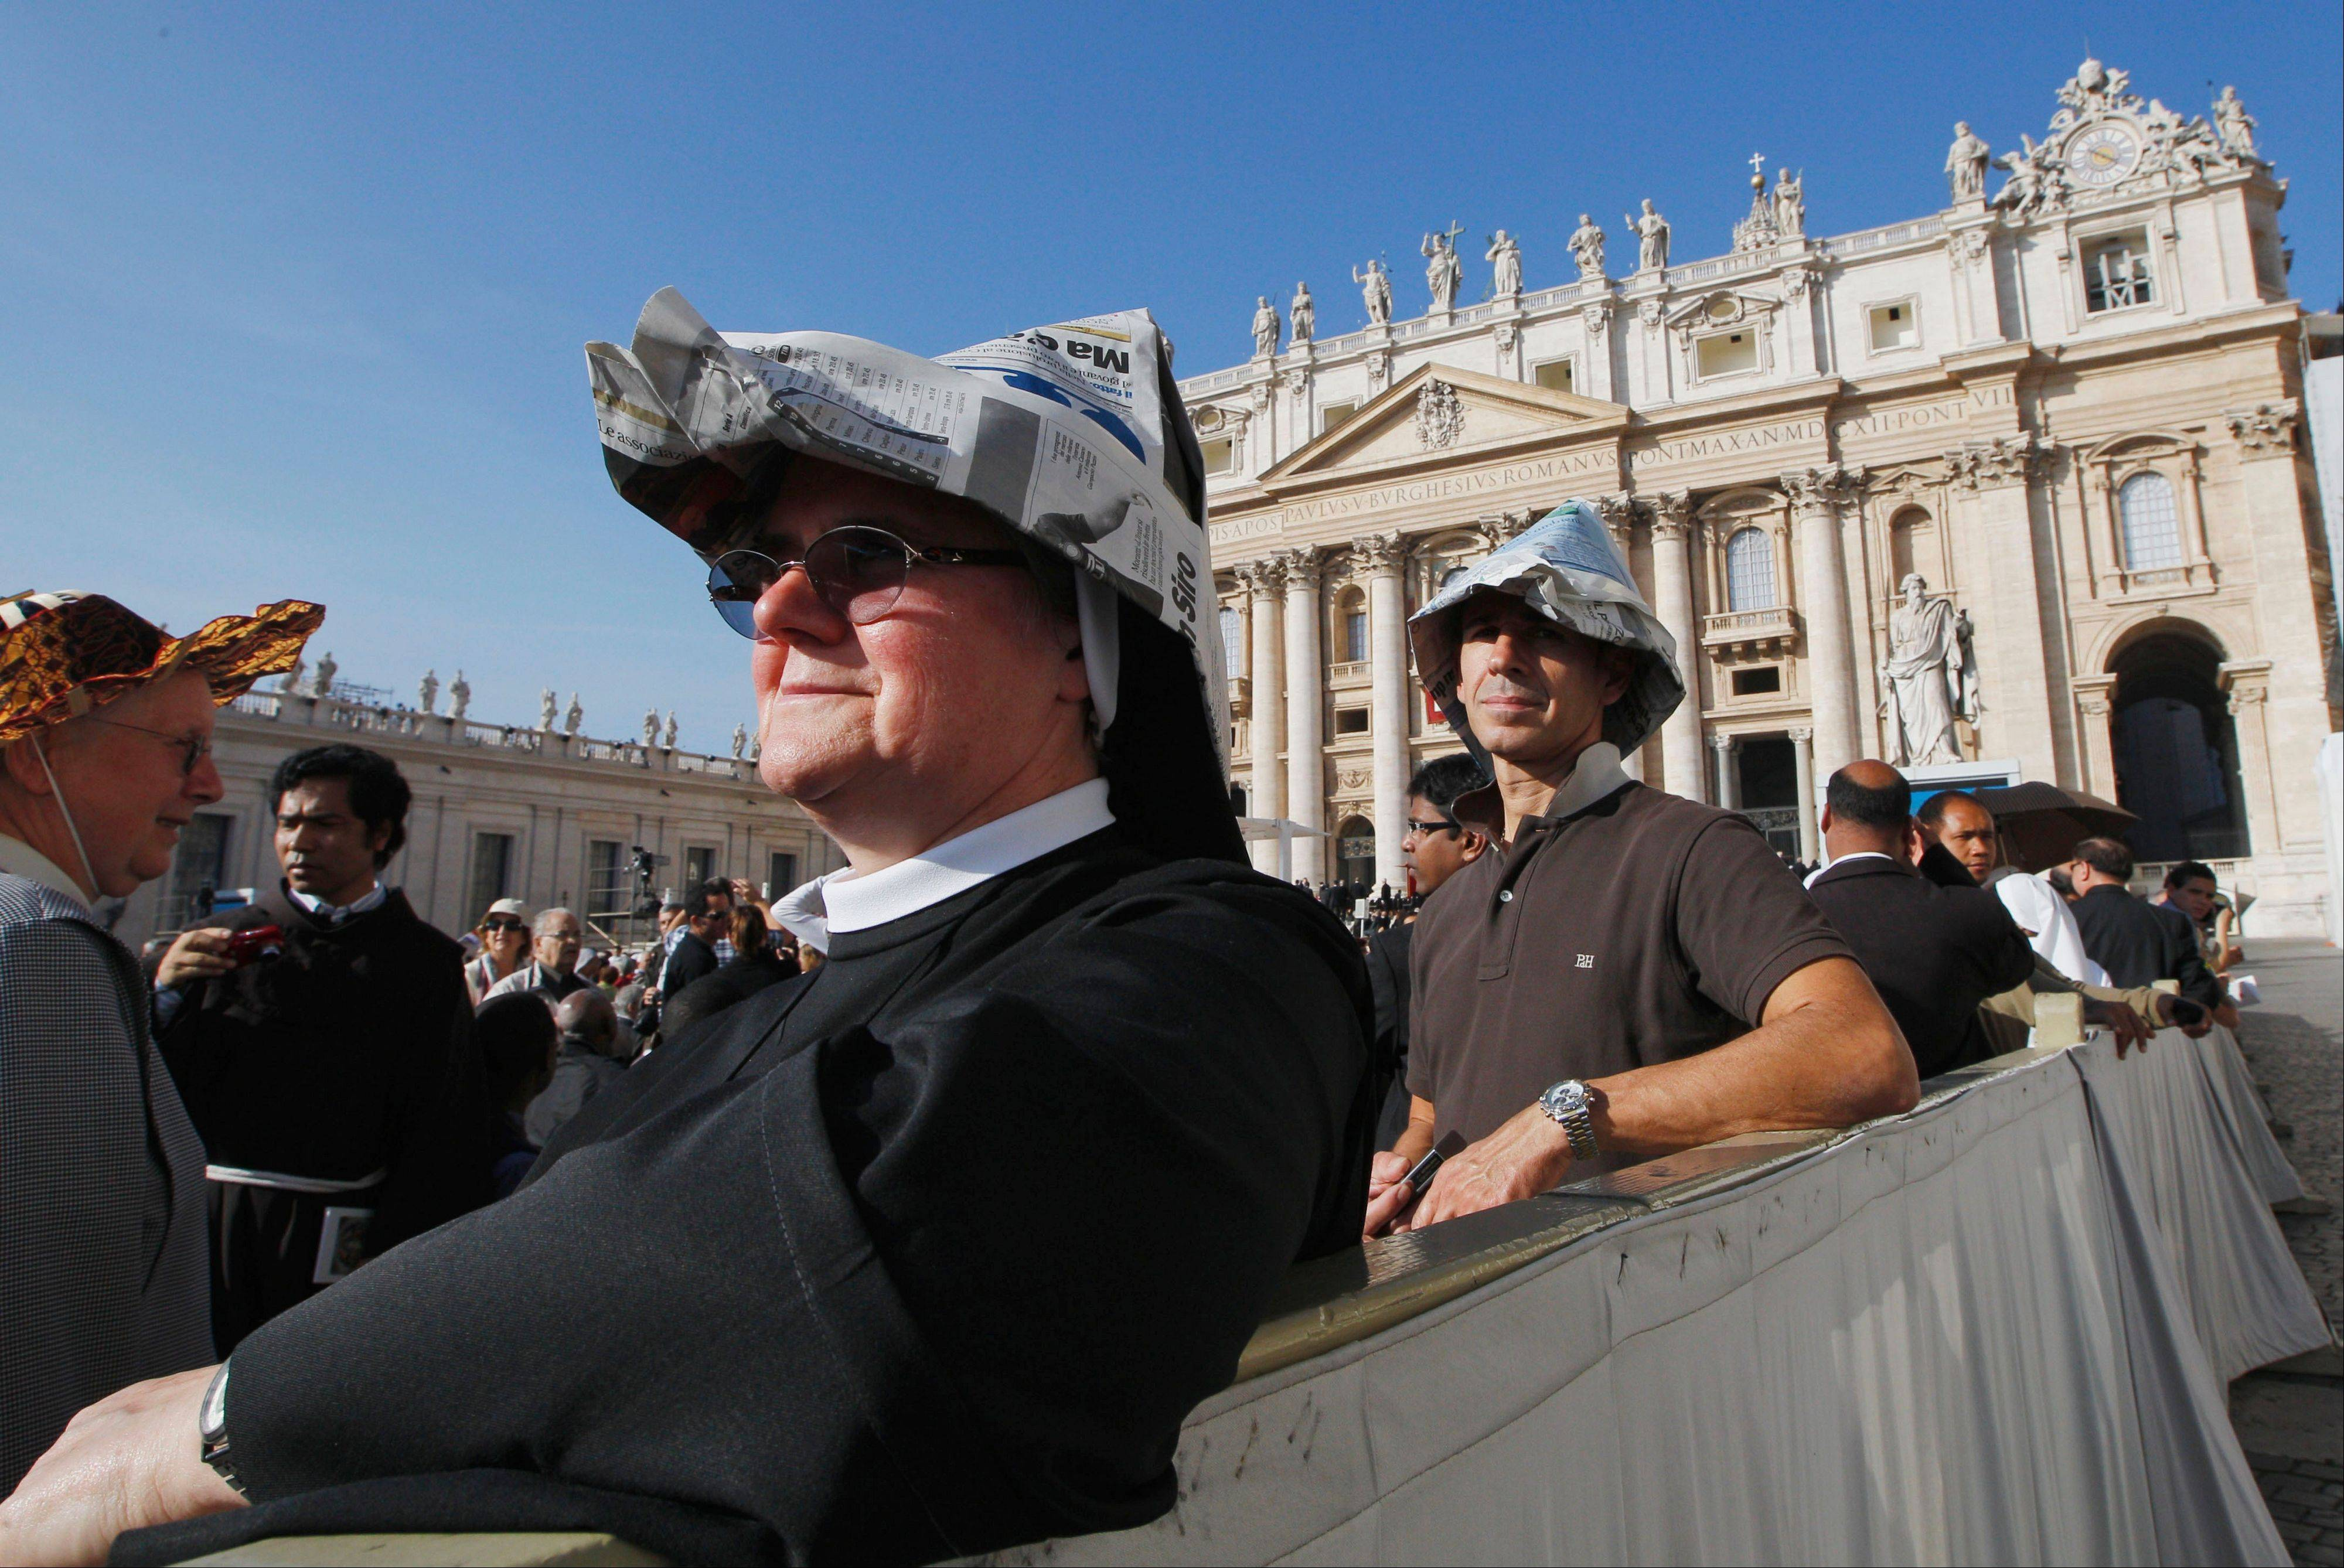 A nun wears a hat made with newspaper pages as she waits for Pope Benedict XVI to celebrate a mass marking the 50th anniversary of the Second Vatican Council, in St. Peter's Square at the Vatican.